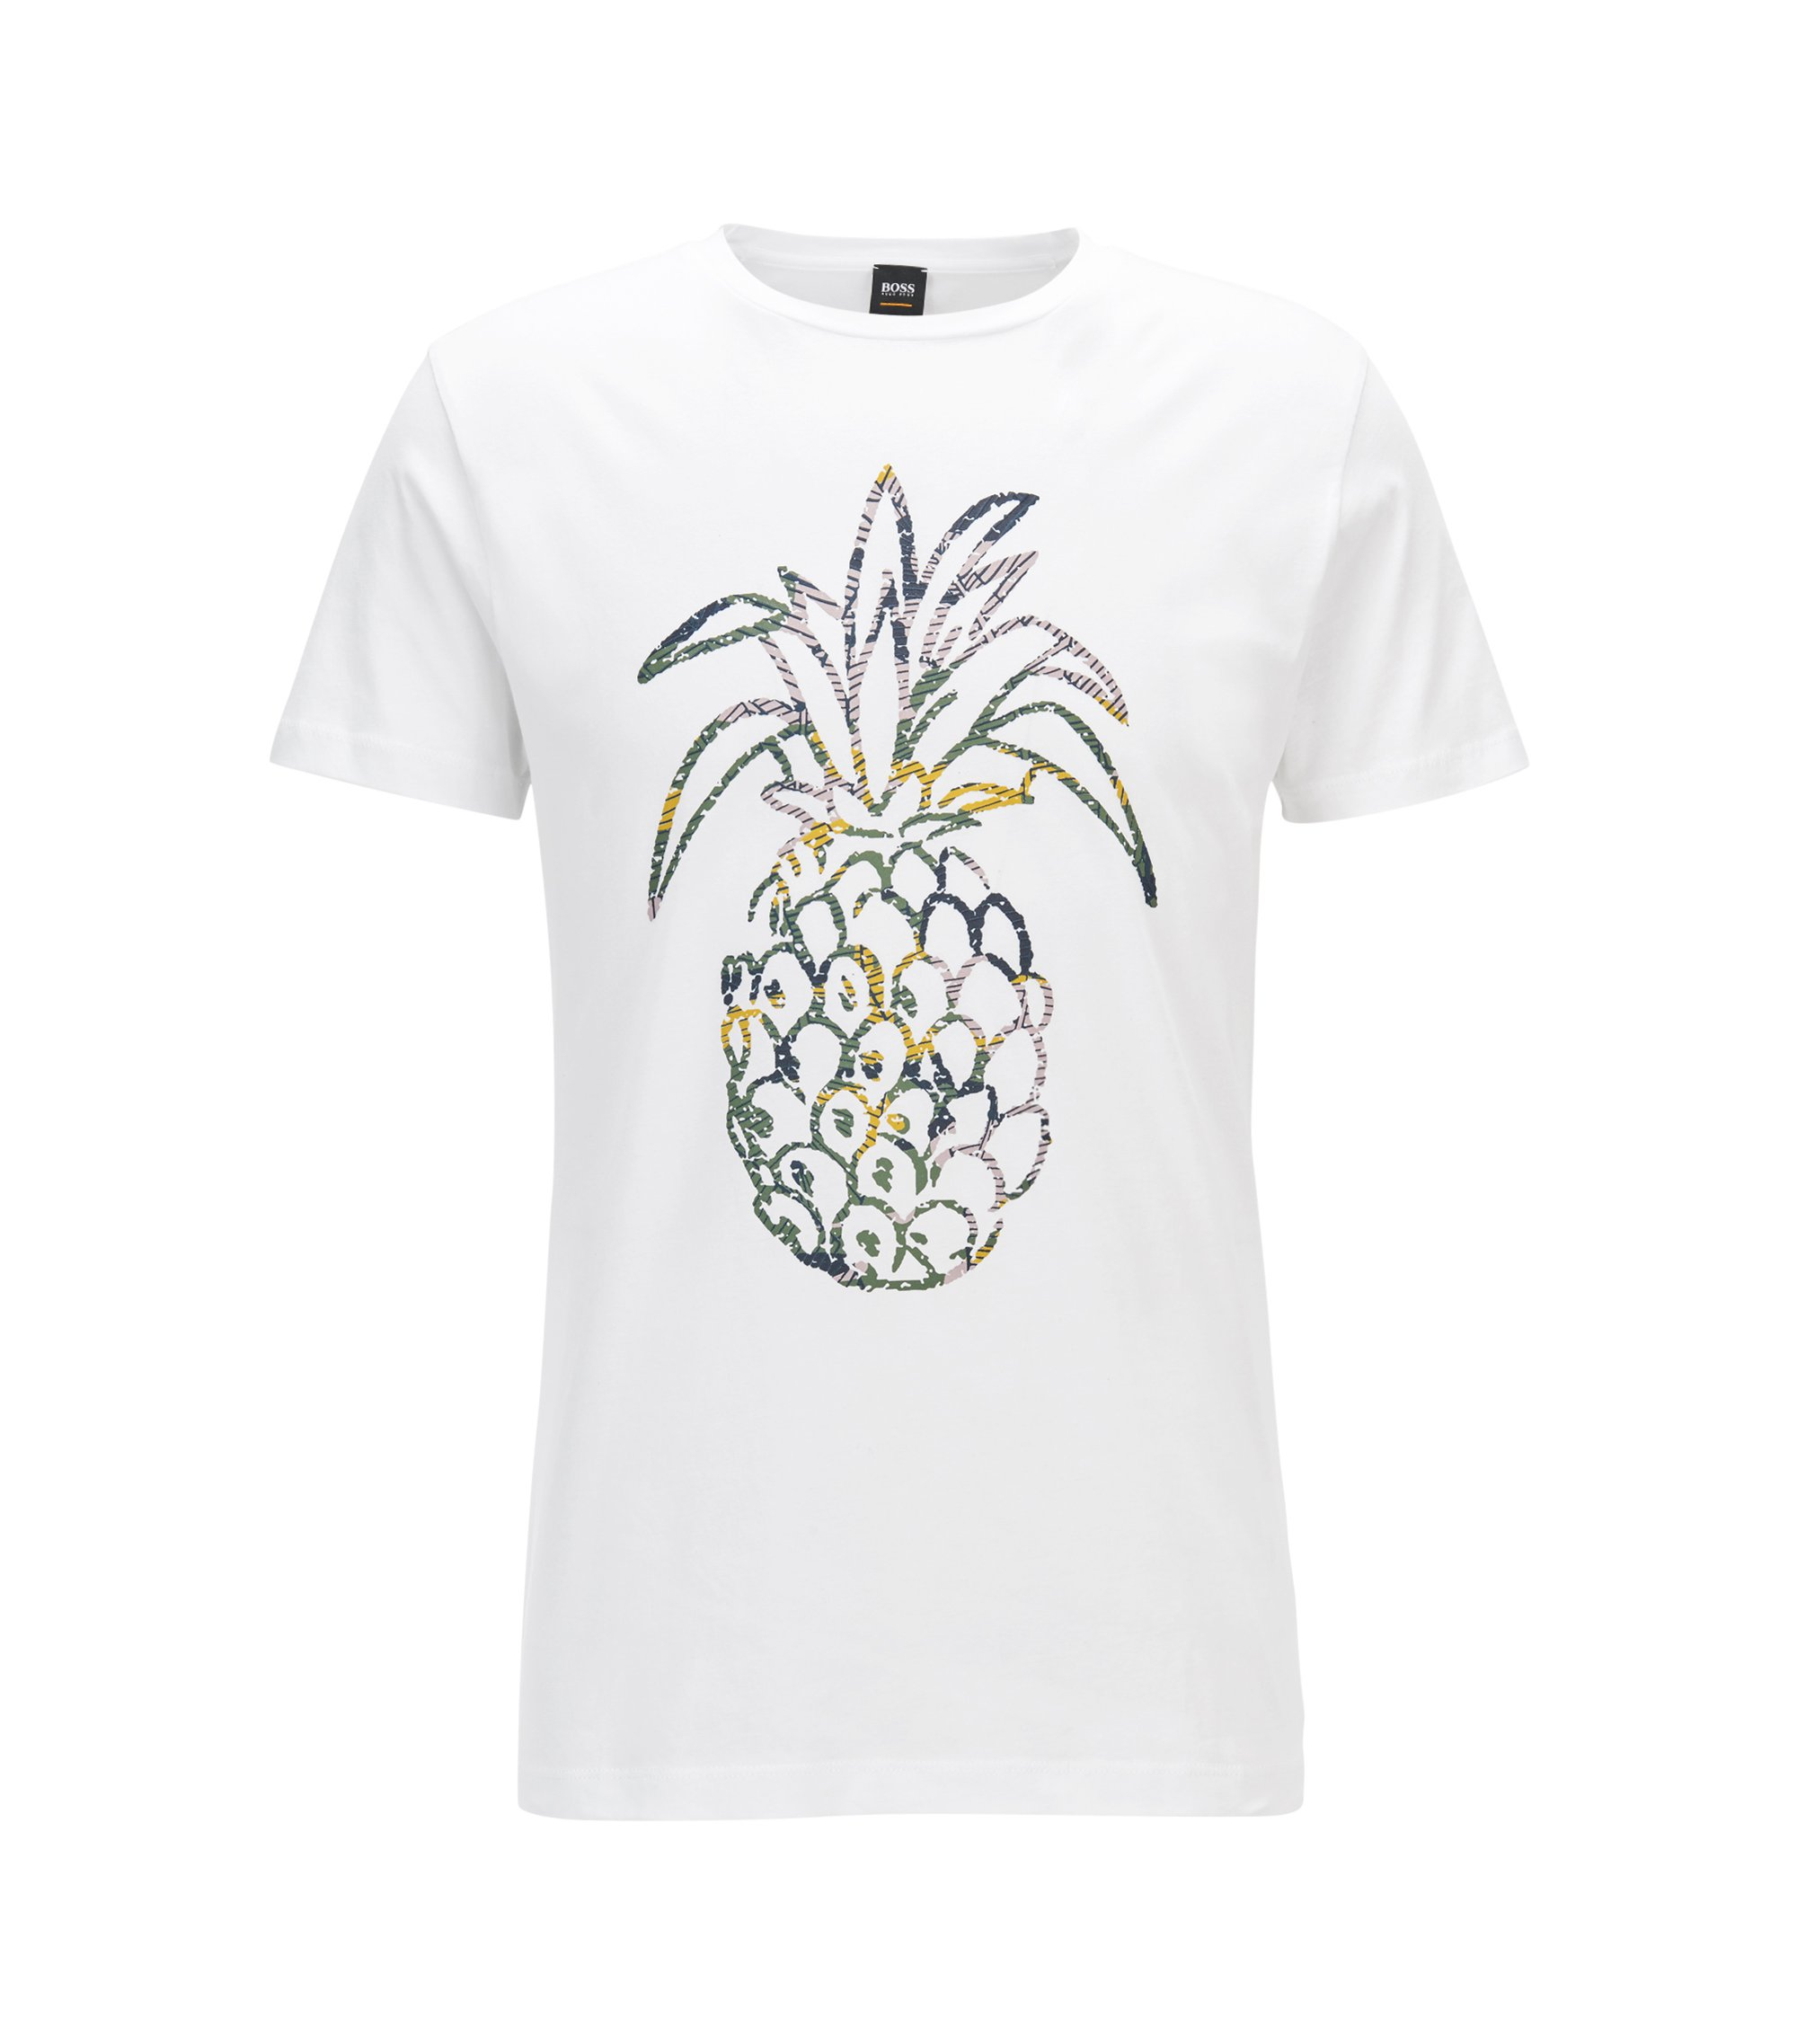 Pineapple Cotton Jersey Graphic T-Shirt | Tauno, White